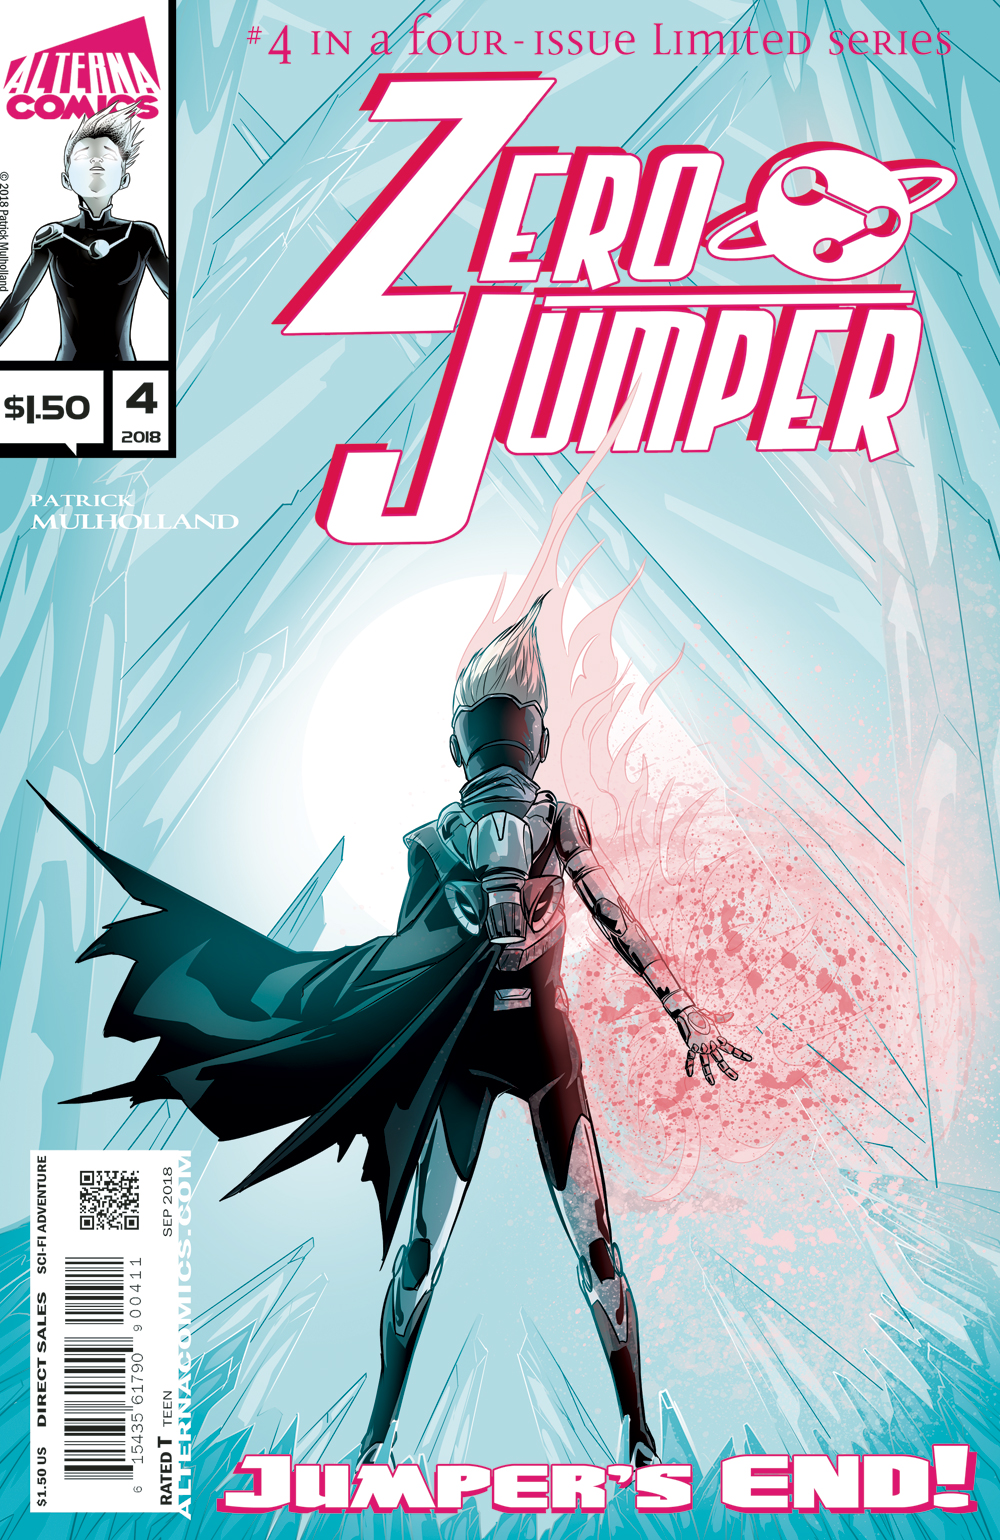 ZERO JUMPER #4 of 4 - The end is near for Juno as she must travel to the center of the galaxy in hopes of writing an unspeakable wrong. The power to reset the timeline and save humanity is within her grasp, but to do so, she must face the greatest threat she's ever known.(W/A) Patrick Mulholland$1.50, 32 pgs, Sci-Fi Action, Full Color, 12+